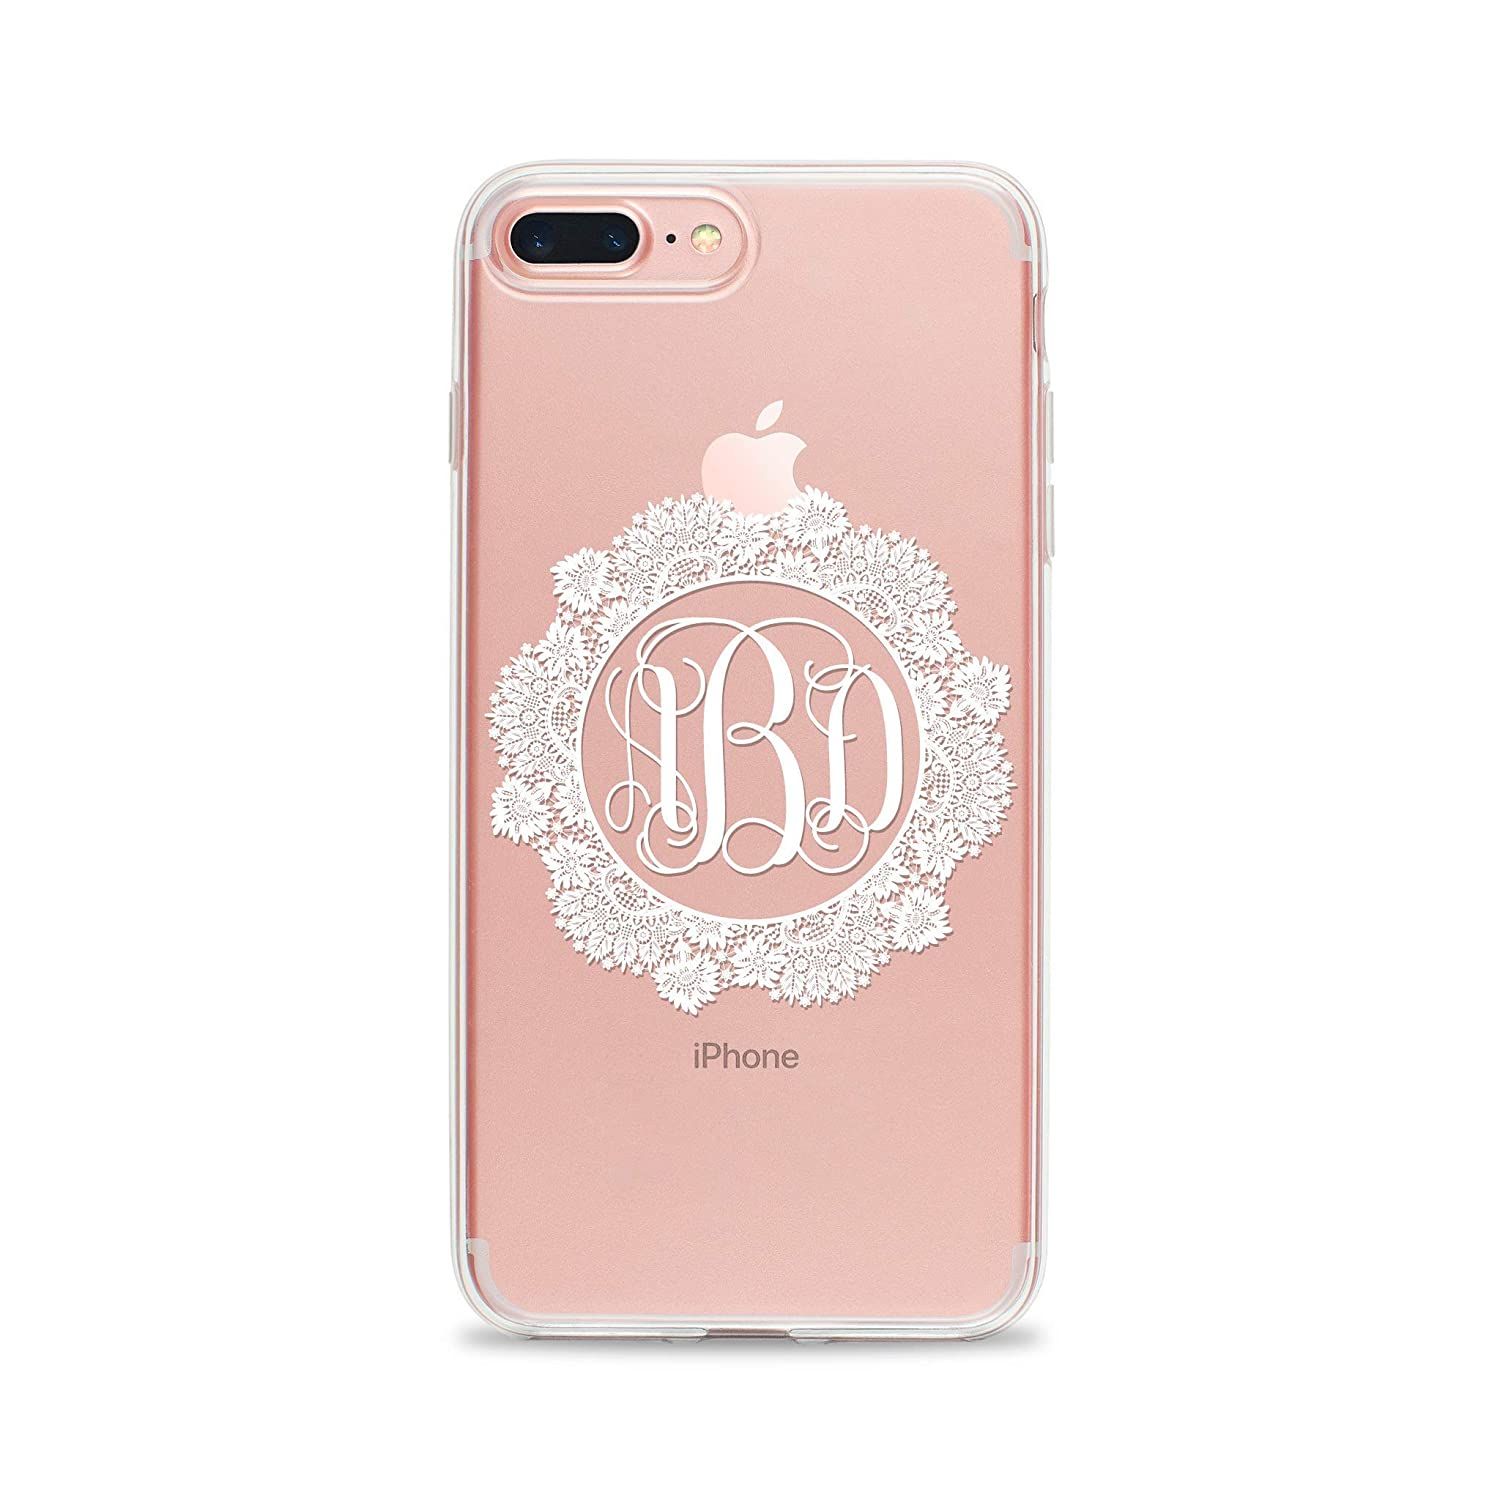 Clear Phone Case with Monogram for iPhone XS X 10 8 Plus 7 6s 6 SE 5s 5 Samsung Galaxy S9 S8 S7 edge S6 Romantic Lace Print Personalized Custom Initials